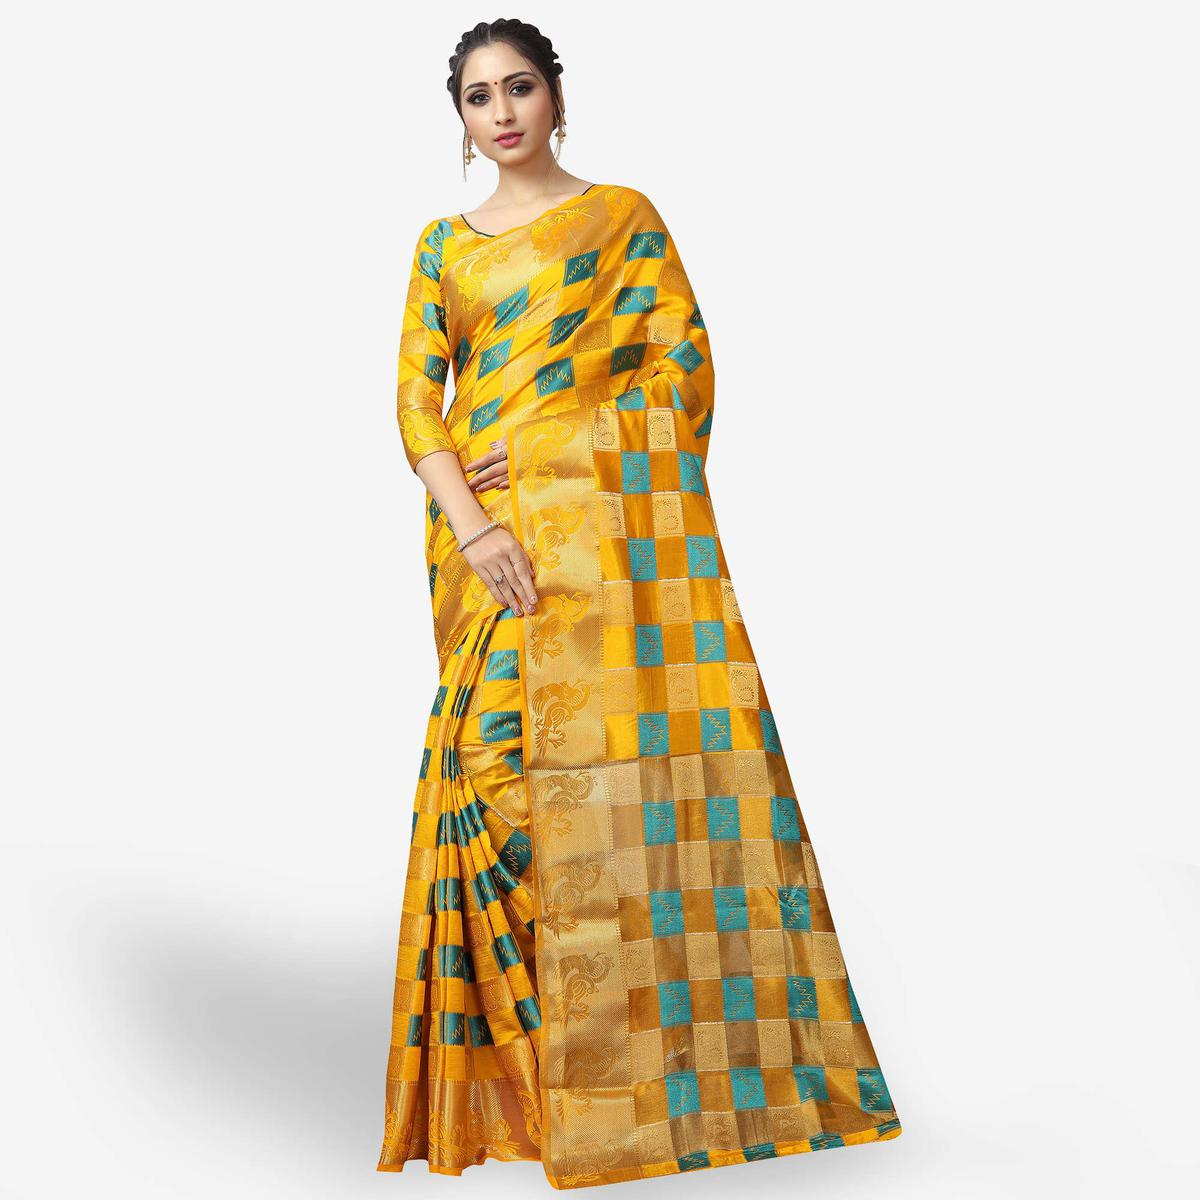 Glowing Yellow Colored Festive Wear Woven Jacquard Silk Saree